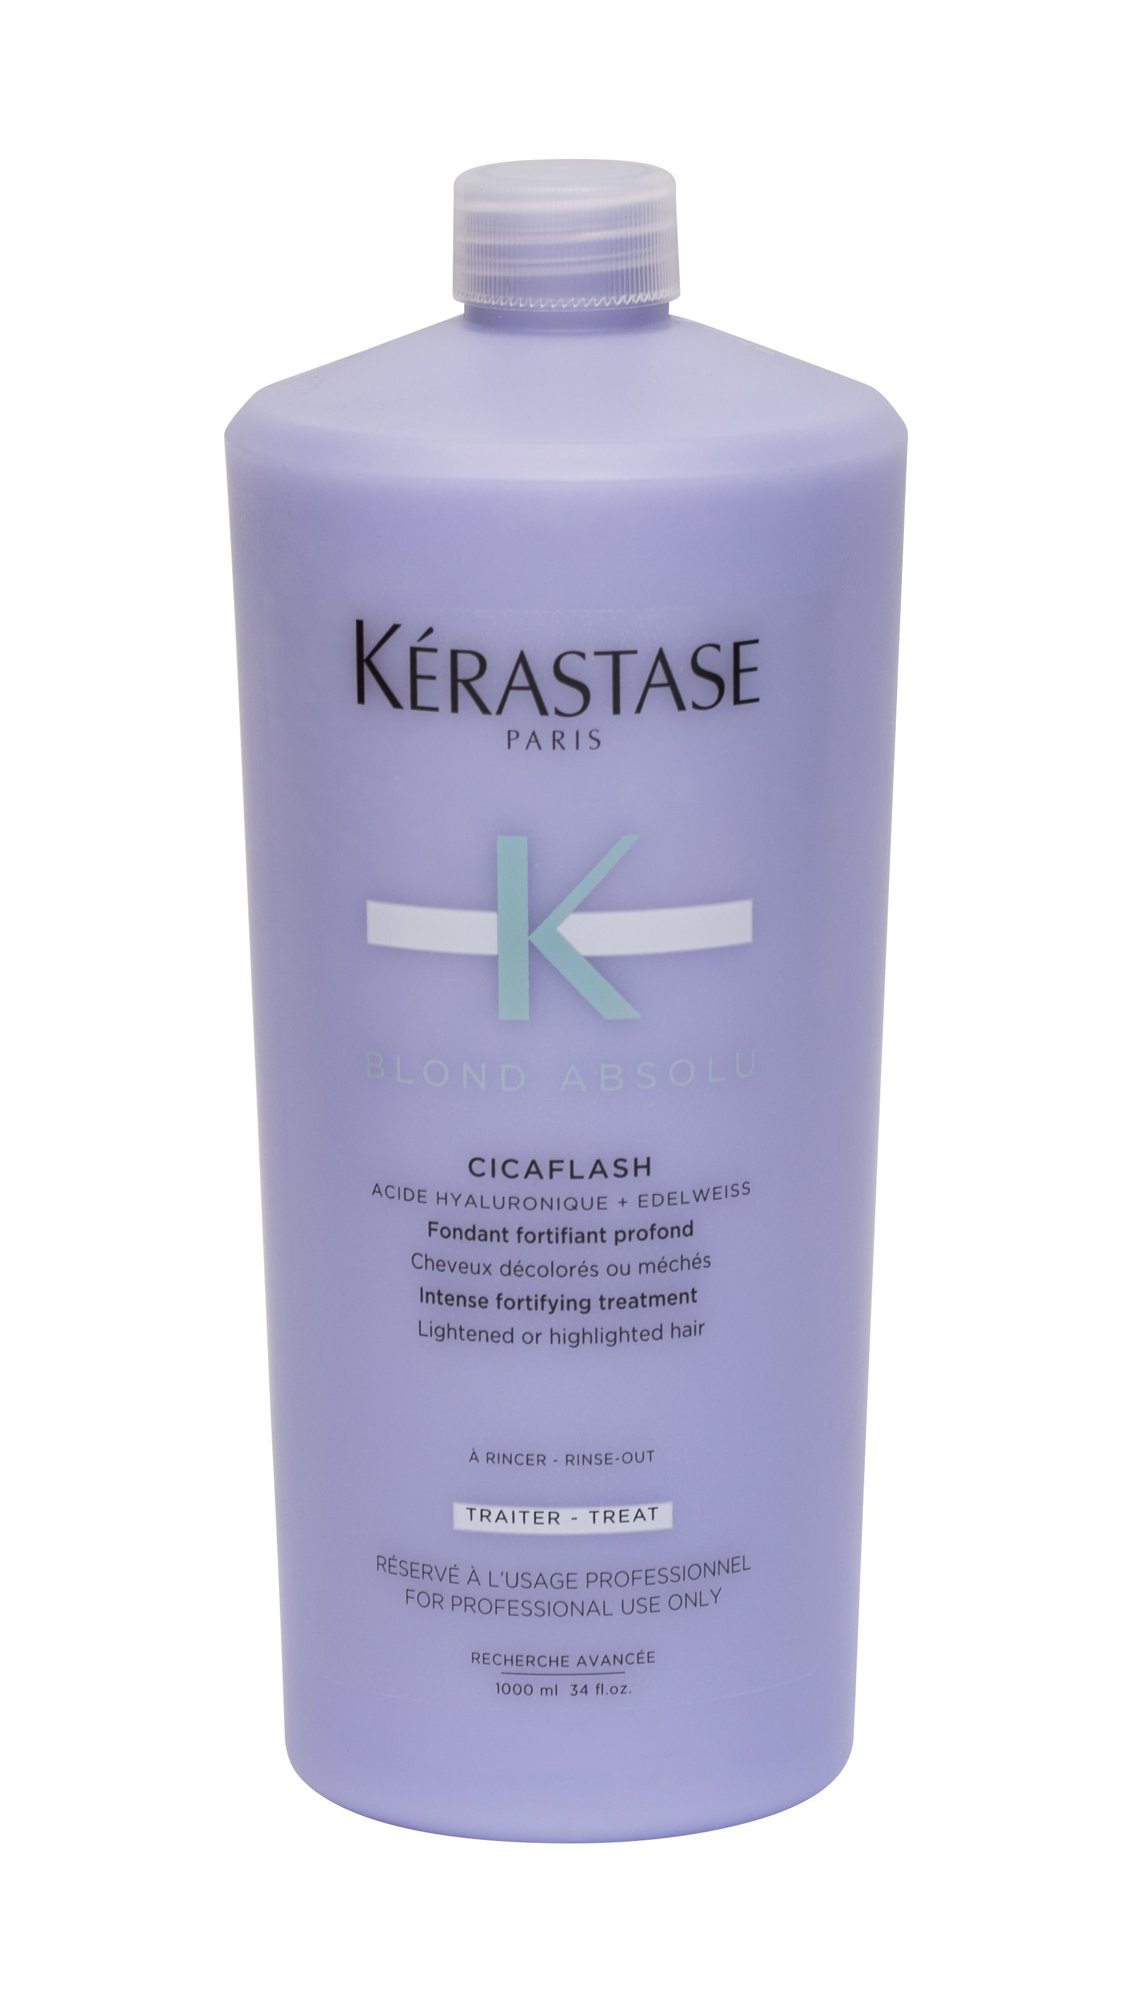 Kérastase Blond Absolu Hair Balm 1000ml